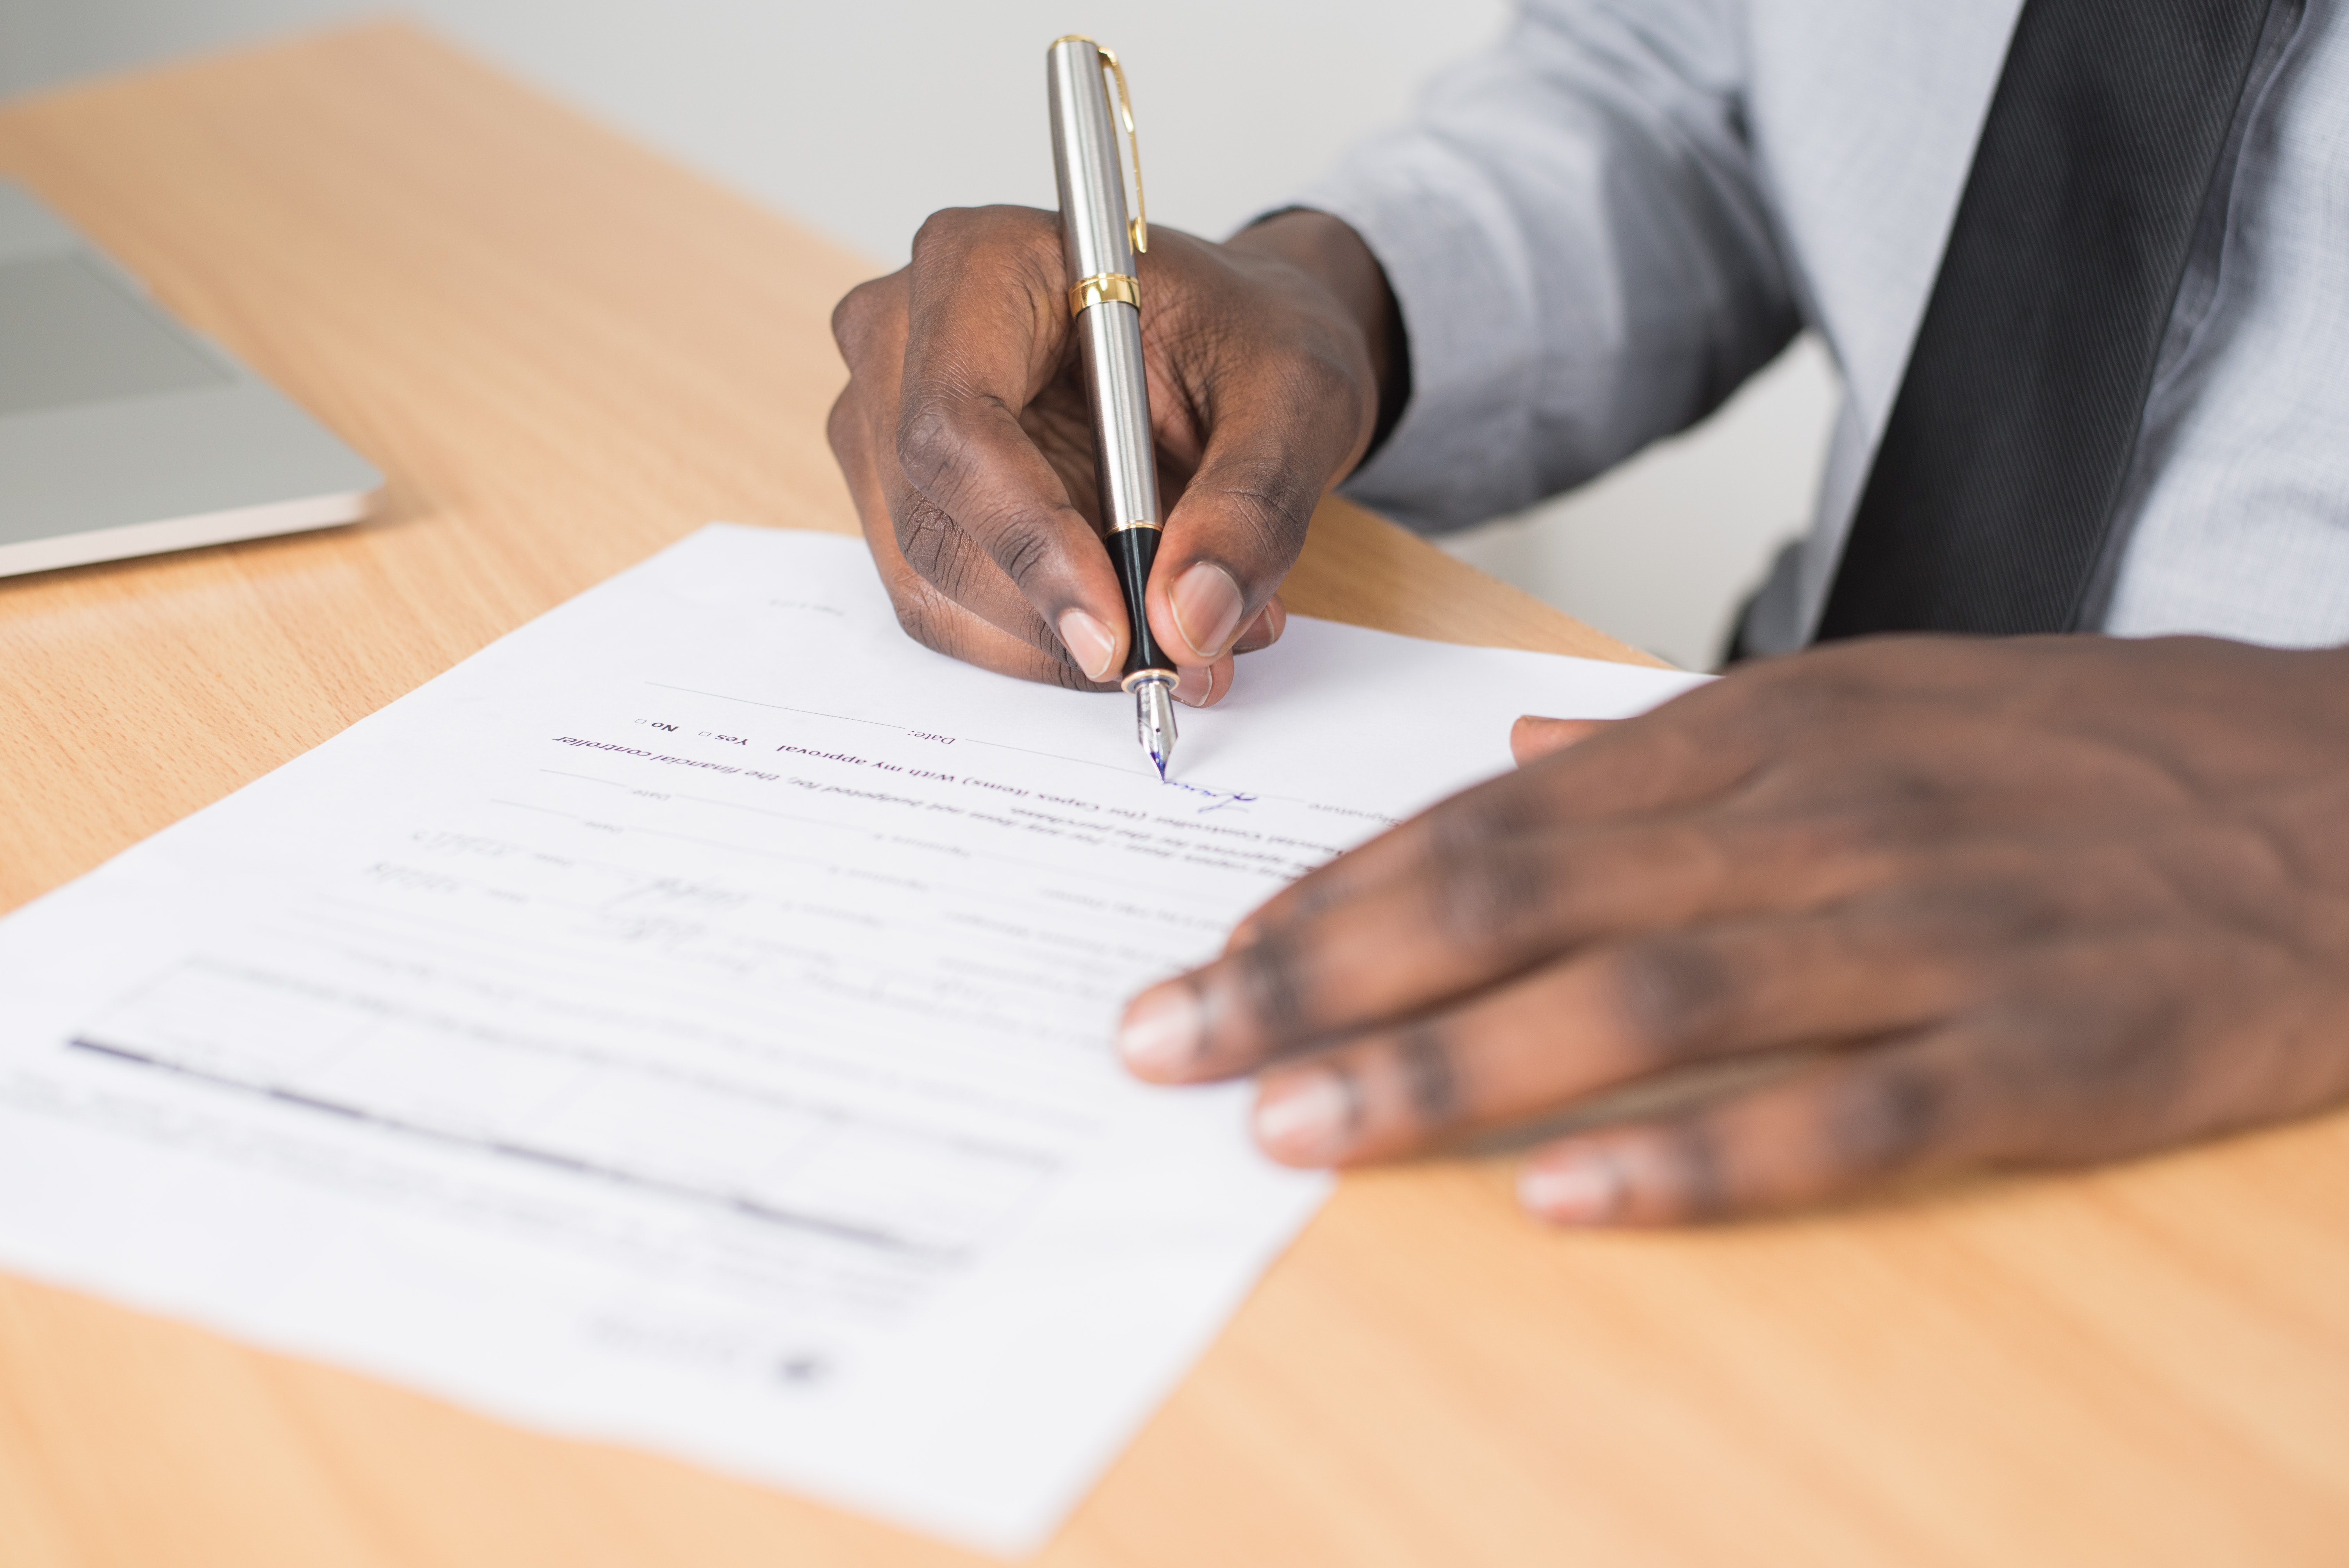 SBA Releases 1-page PPP Forgiveness Application